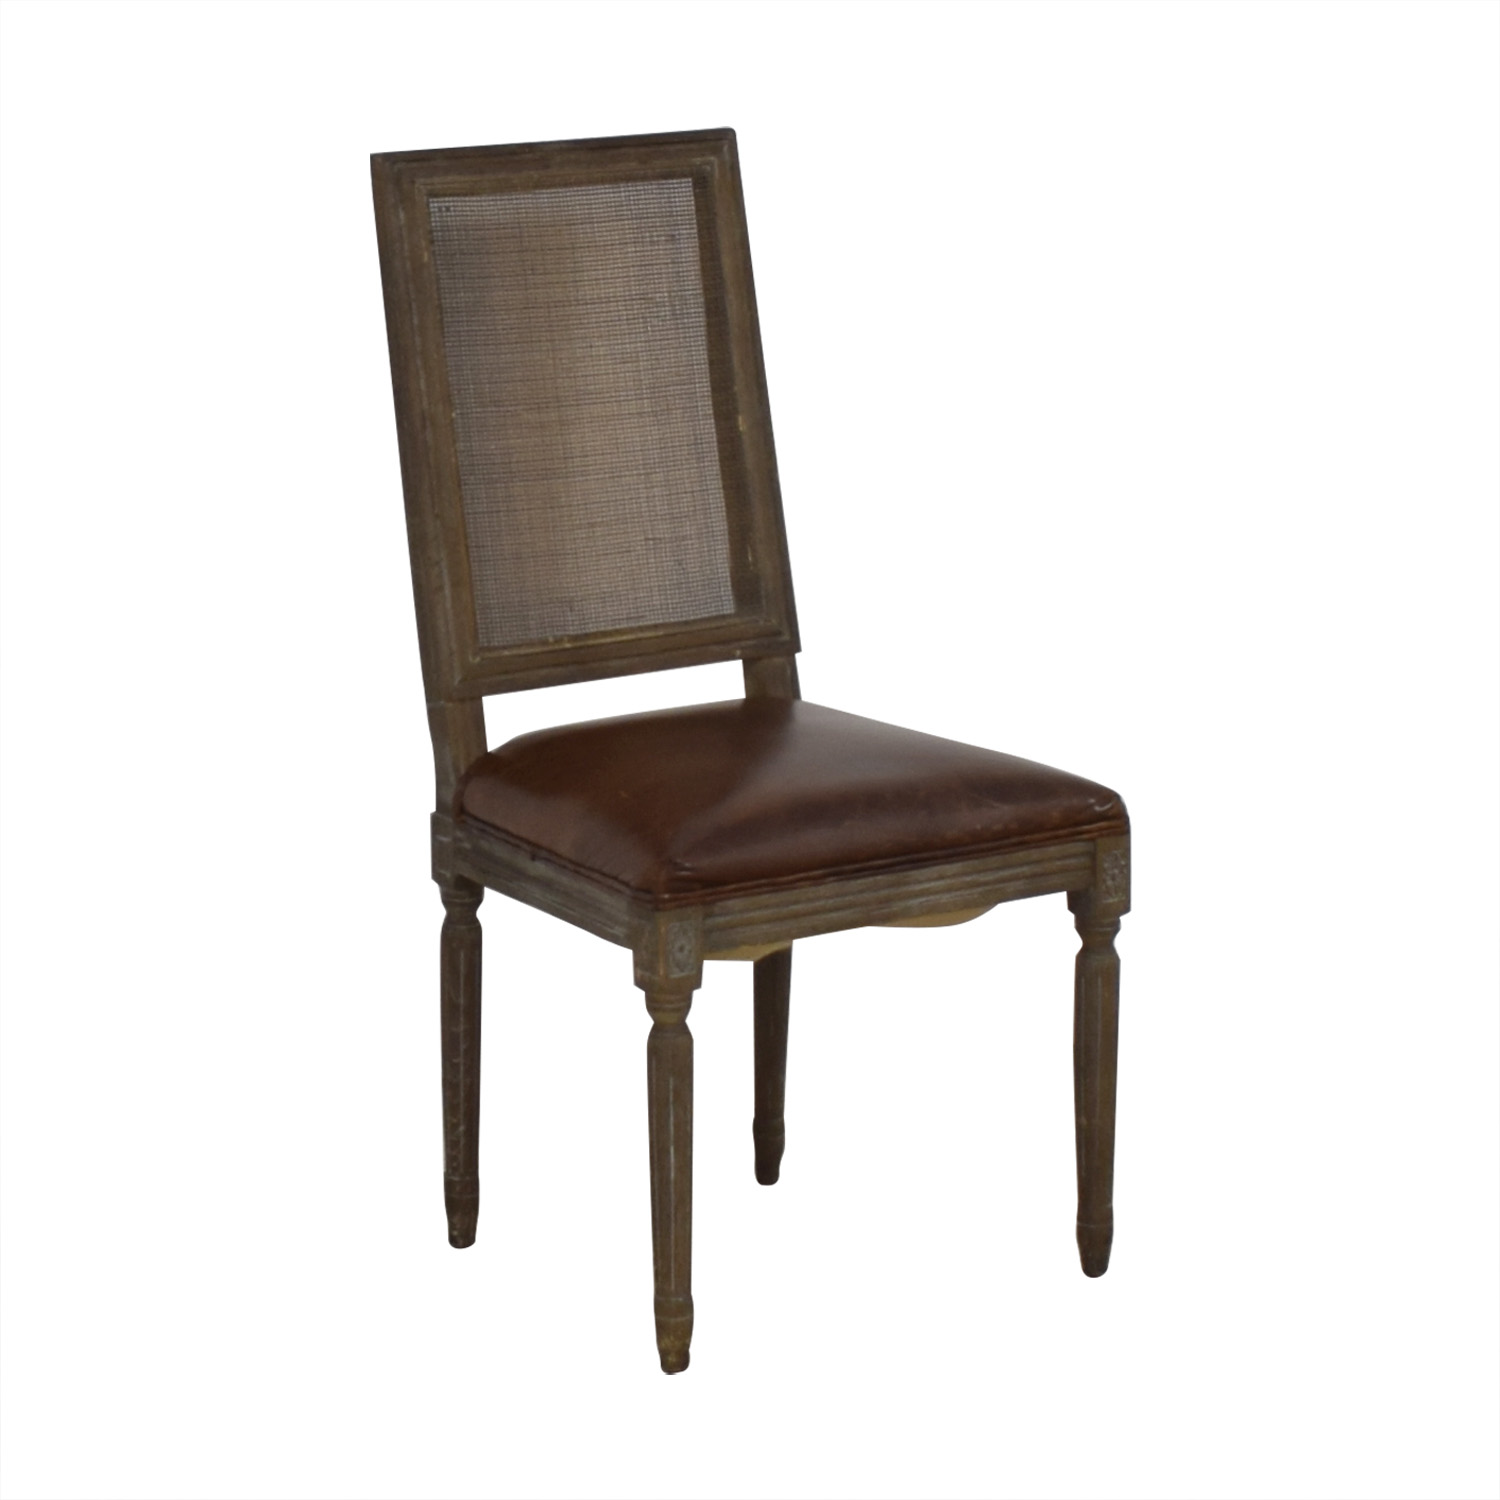 Restoration Hardware Restoration Hardware Vintage French Square Cane Back Leather Side Chair second hand